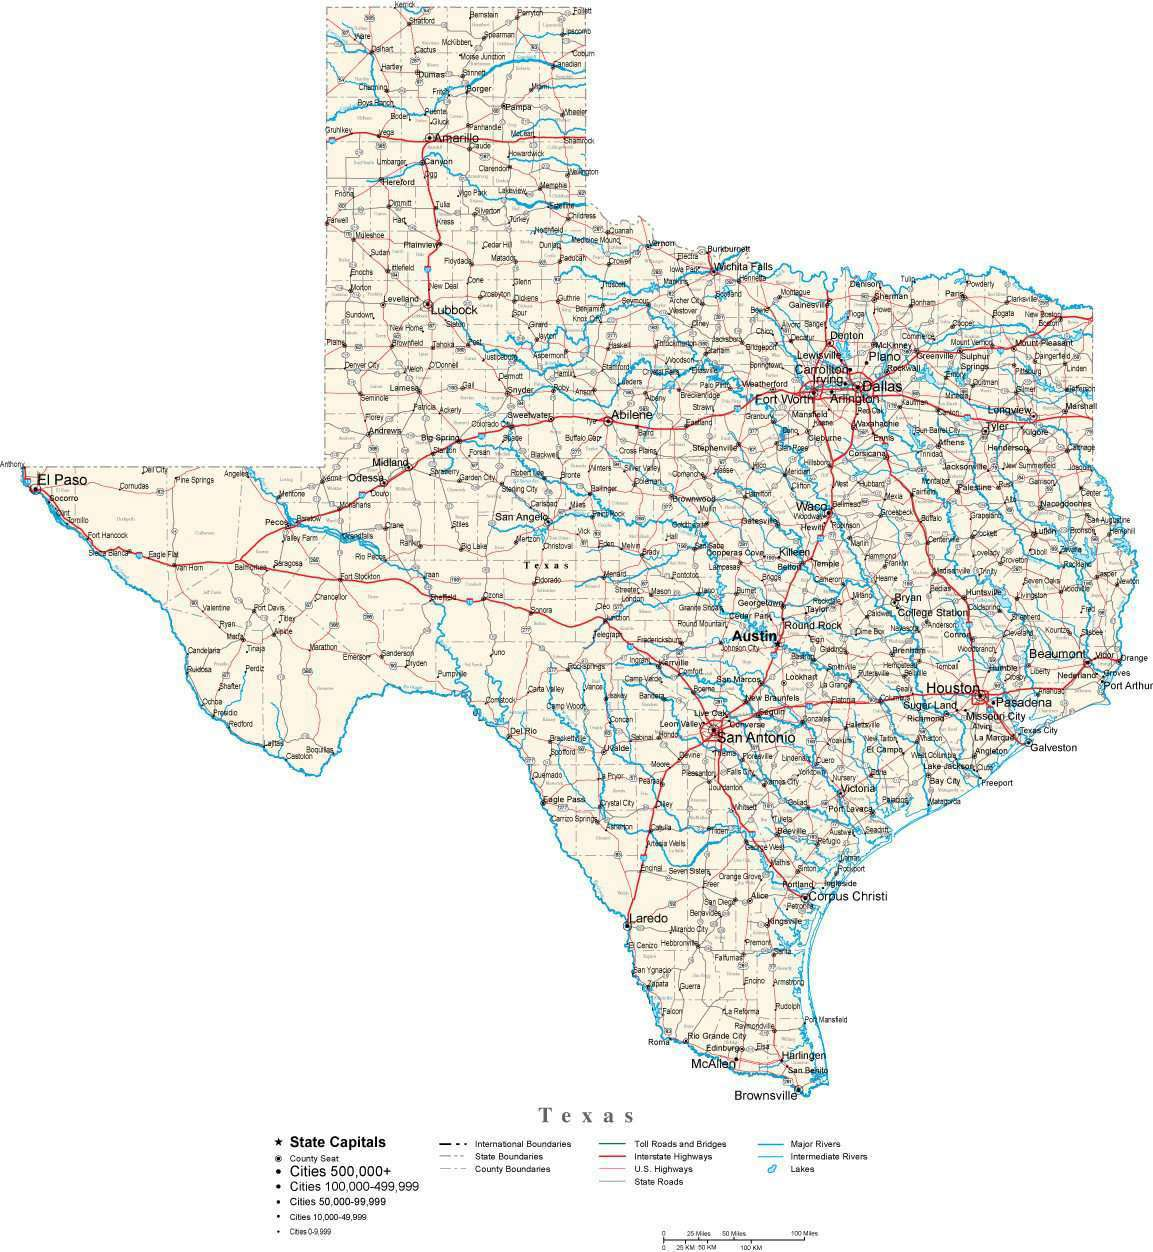 Texas Map - Cut Out Style - with Capital, County Boundaries, Cities, on texas lone star state map, texas united states, texas vs. california size, texas state large map, texas map north america, 2nd biggest state in usa, google maps texas usa, united states political map usa, texas superfund sites map, texas state map by county, texas on usa map, texas golf map, texas map to print, texas maps online, texas state geography map, texas with capital, texas u.s.a, texas road map of usa, texas zip codes by state, texas state project,